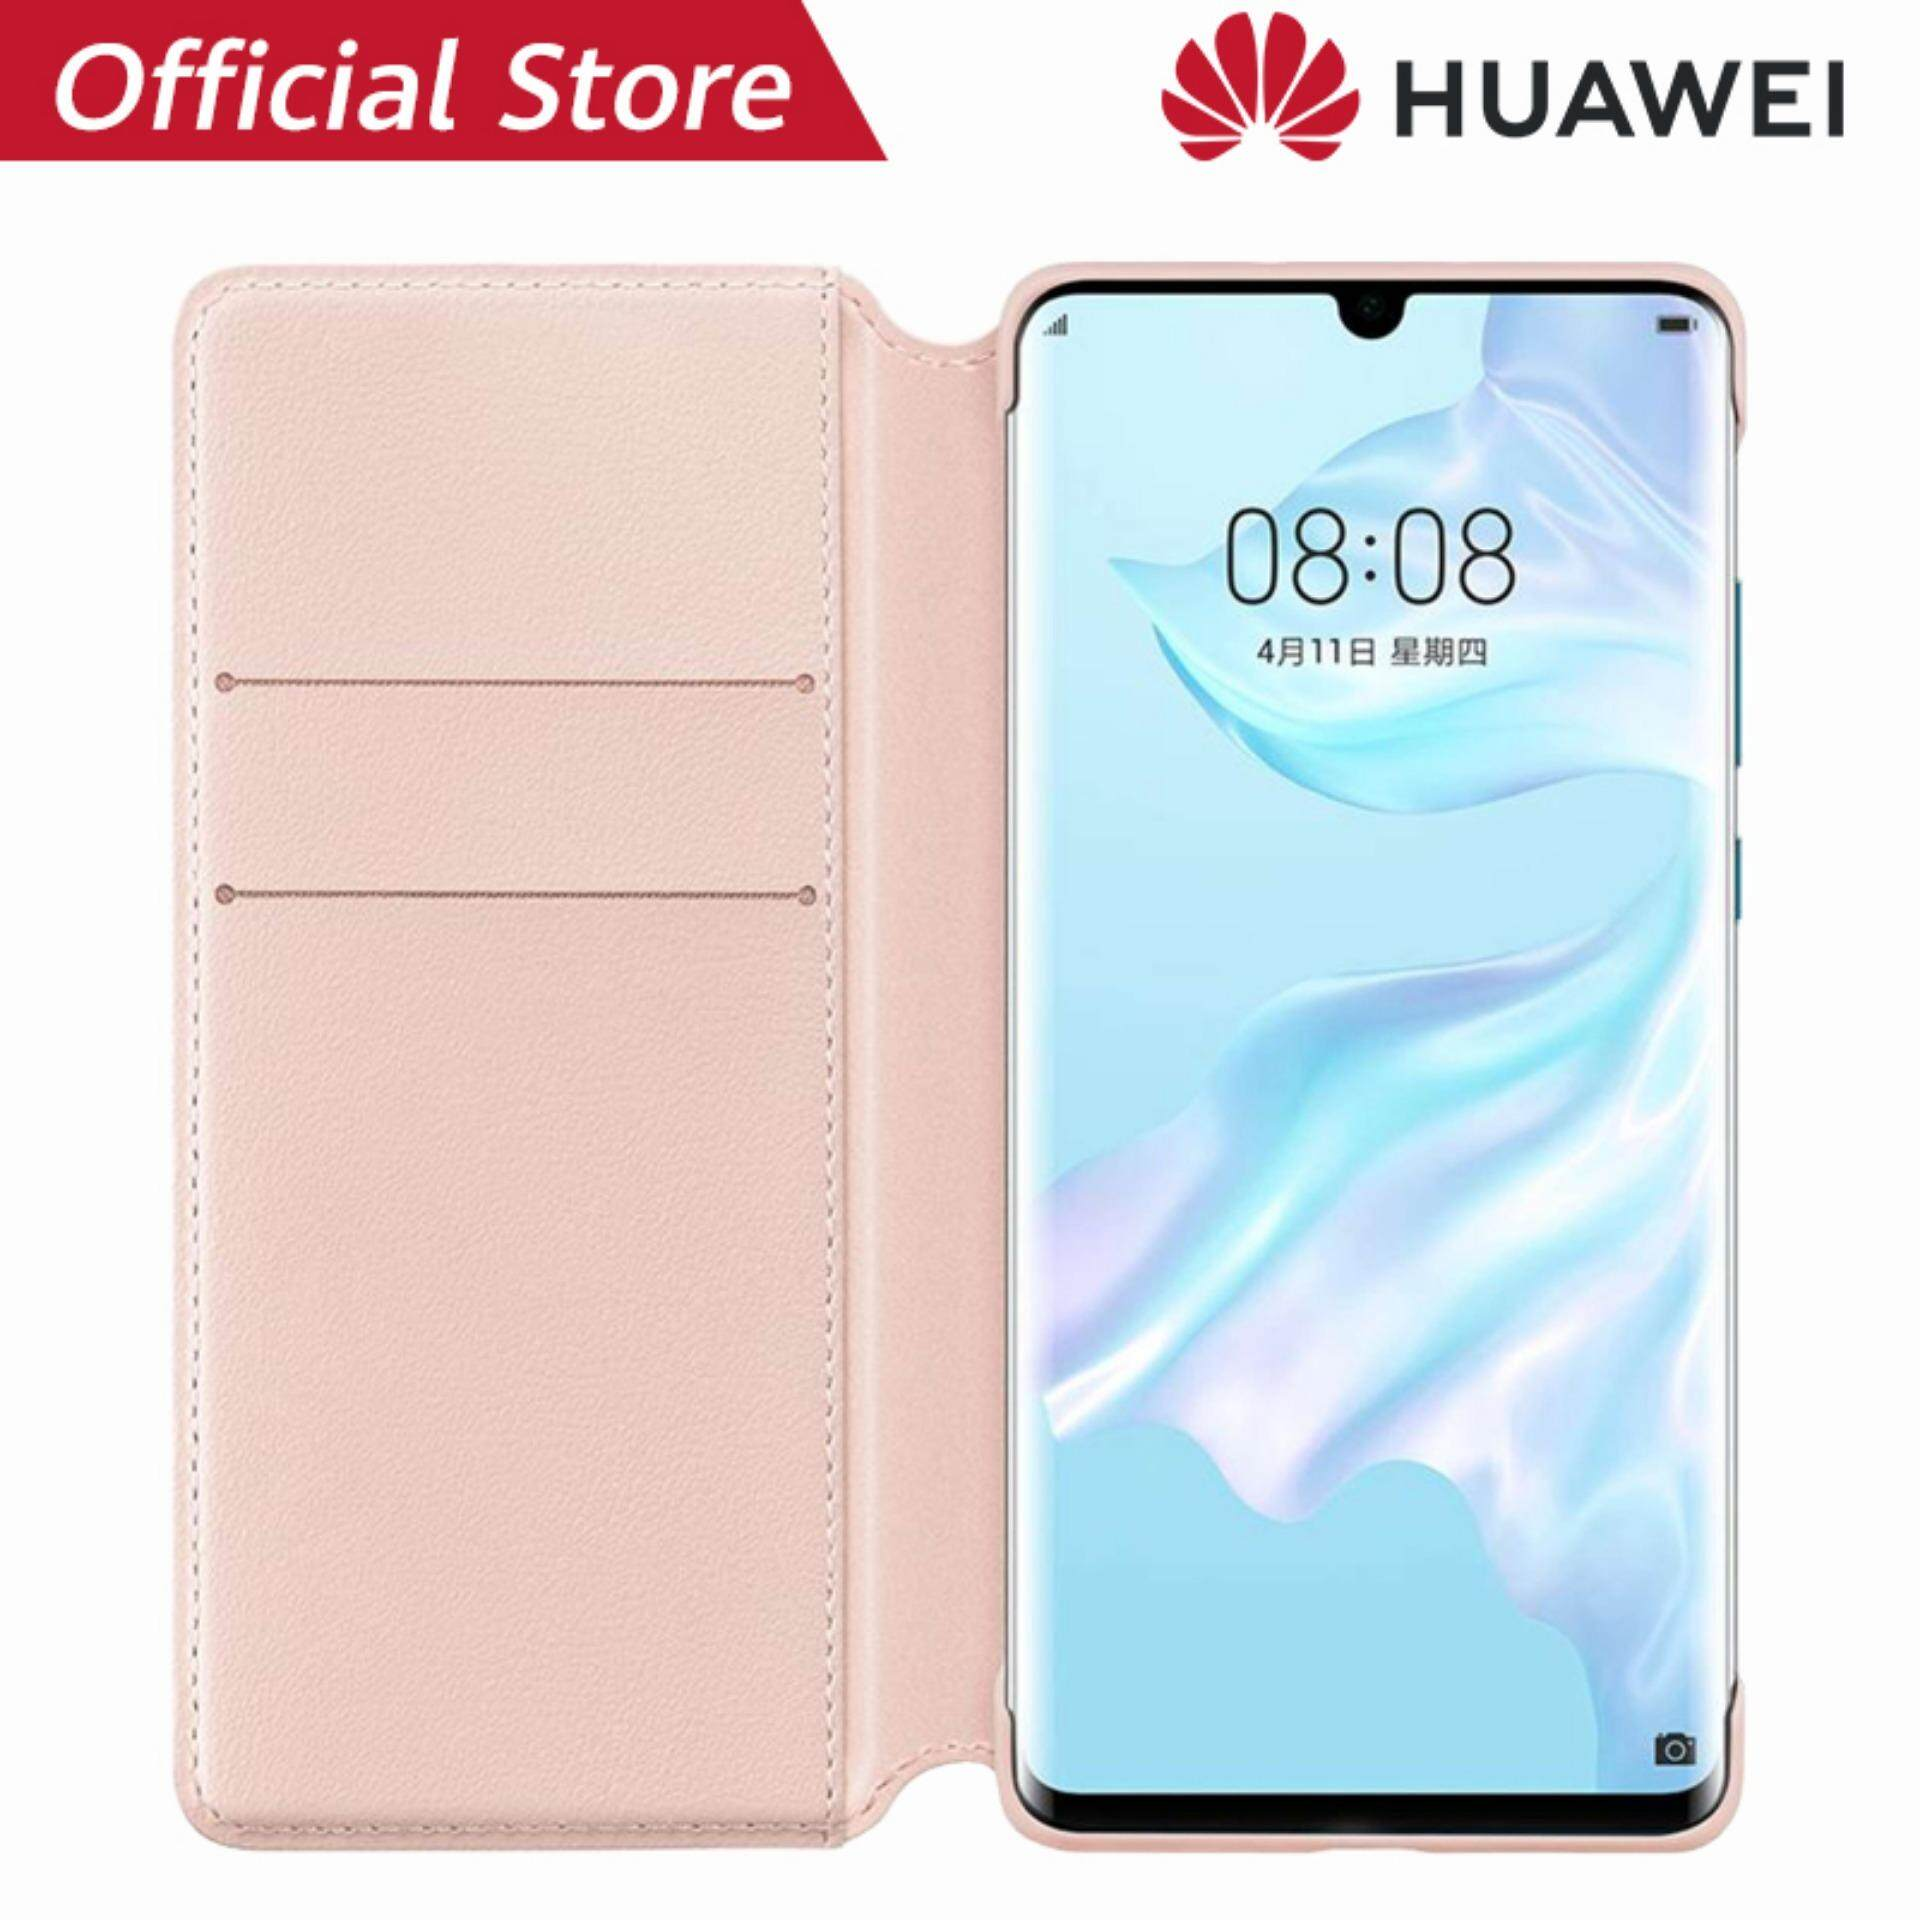 Huawei P30 Pro Wallet Cover สำหรับ P30 Pro